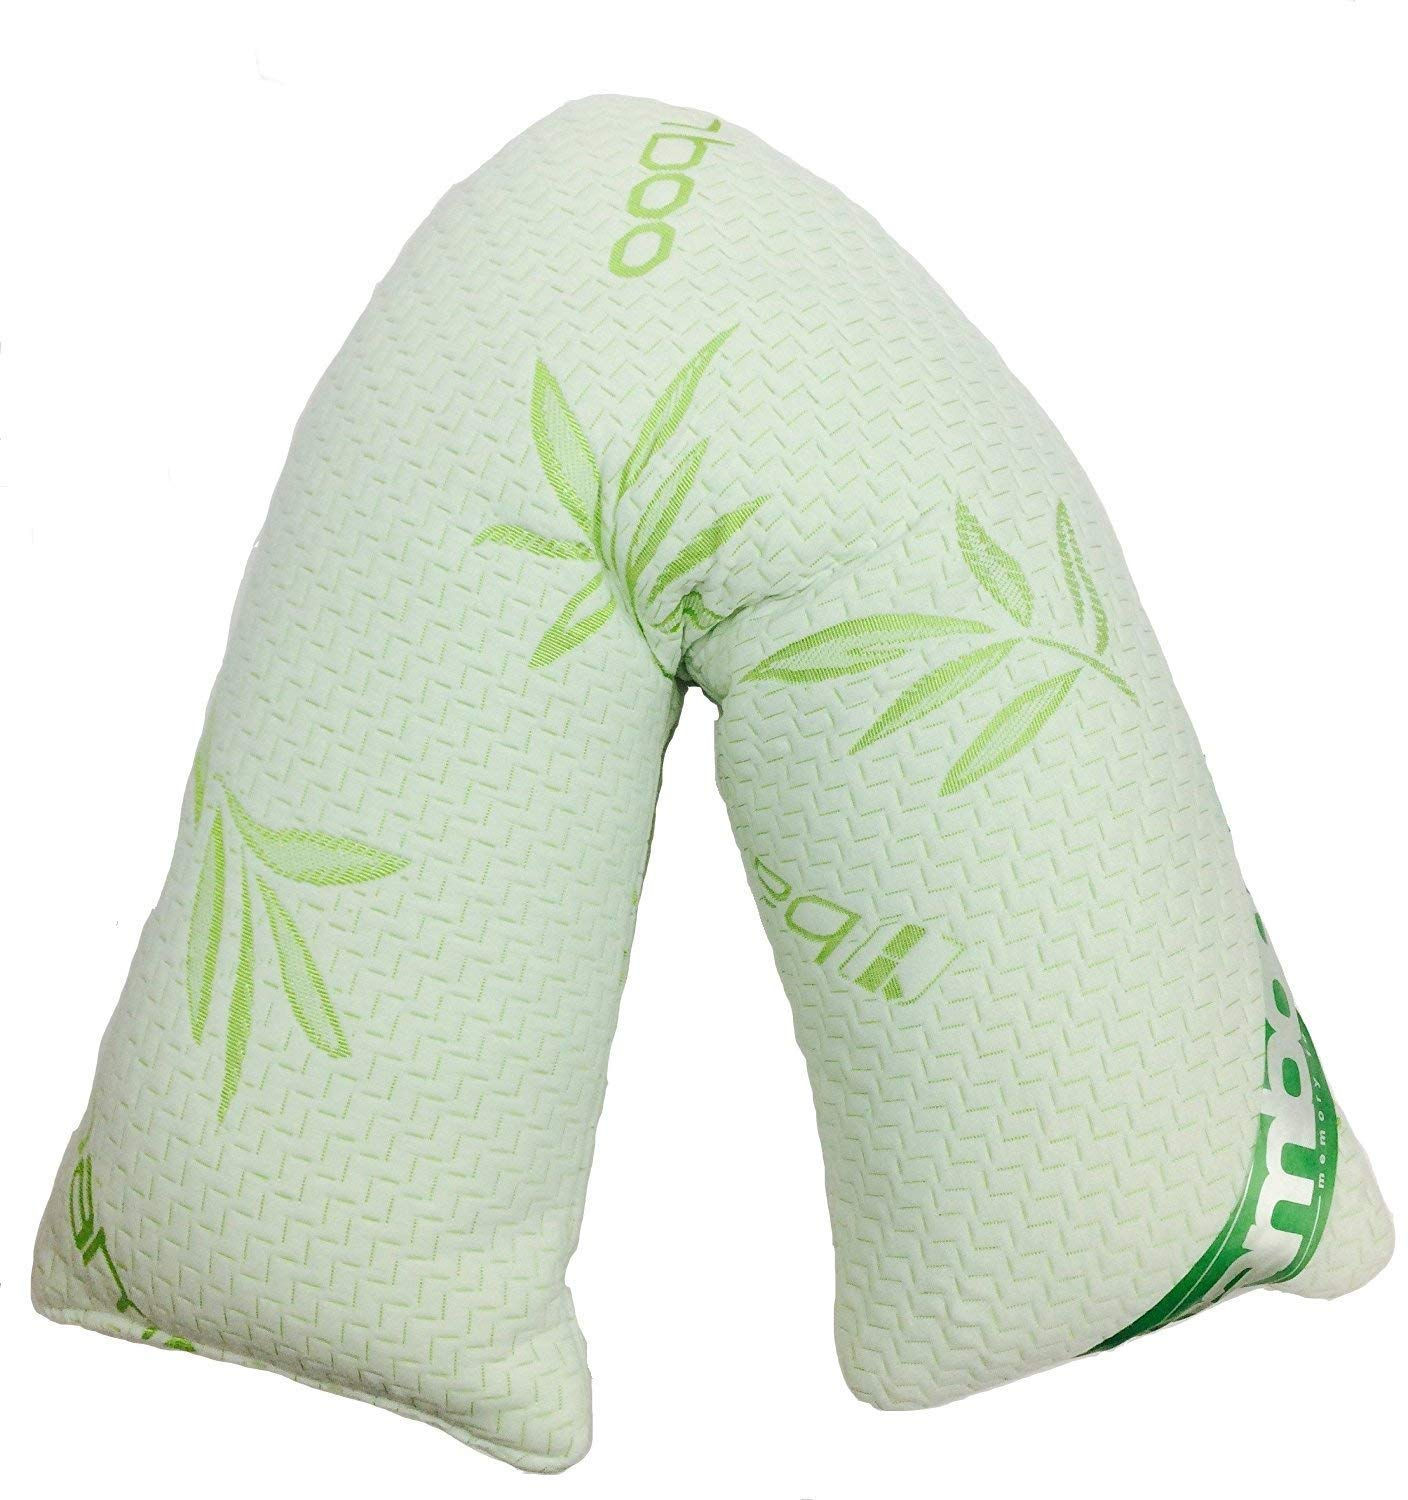 Extra Cushioning Support For Head V Shaped Bamboo Memory Foam Pillow Includes Free Grey V Pillow Case Cover Neck /& Back